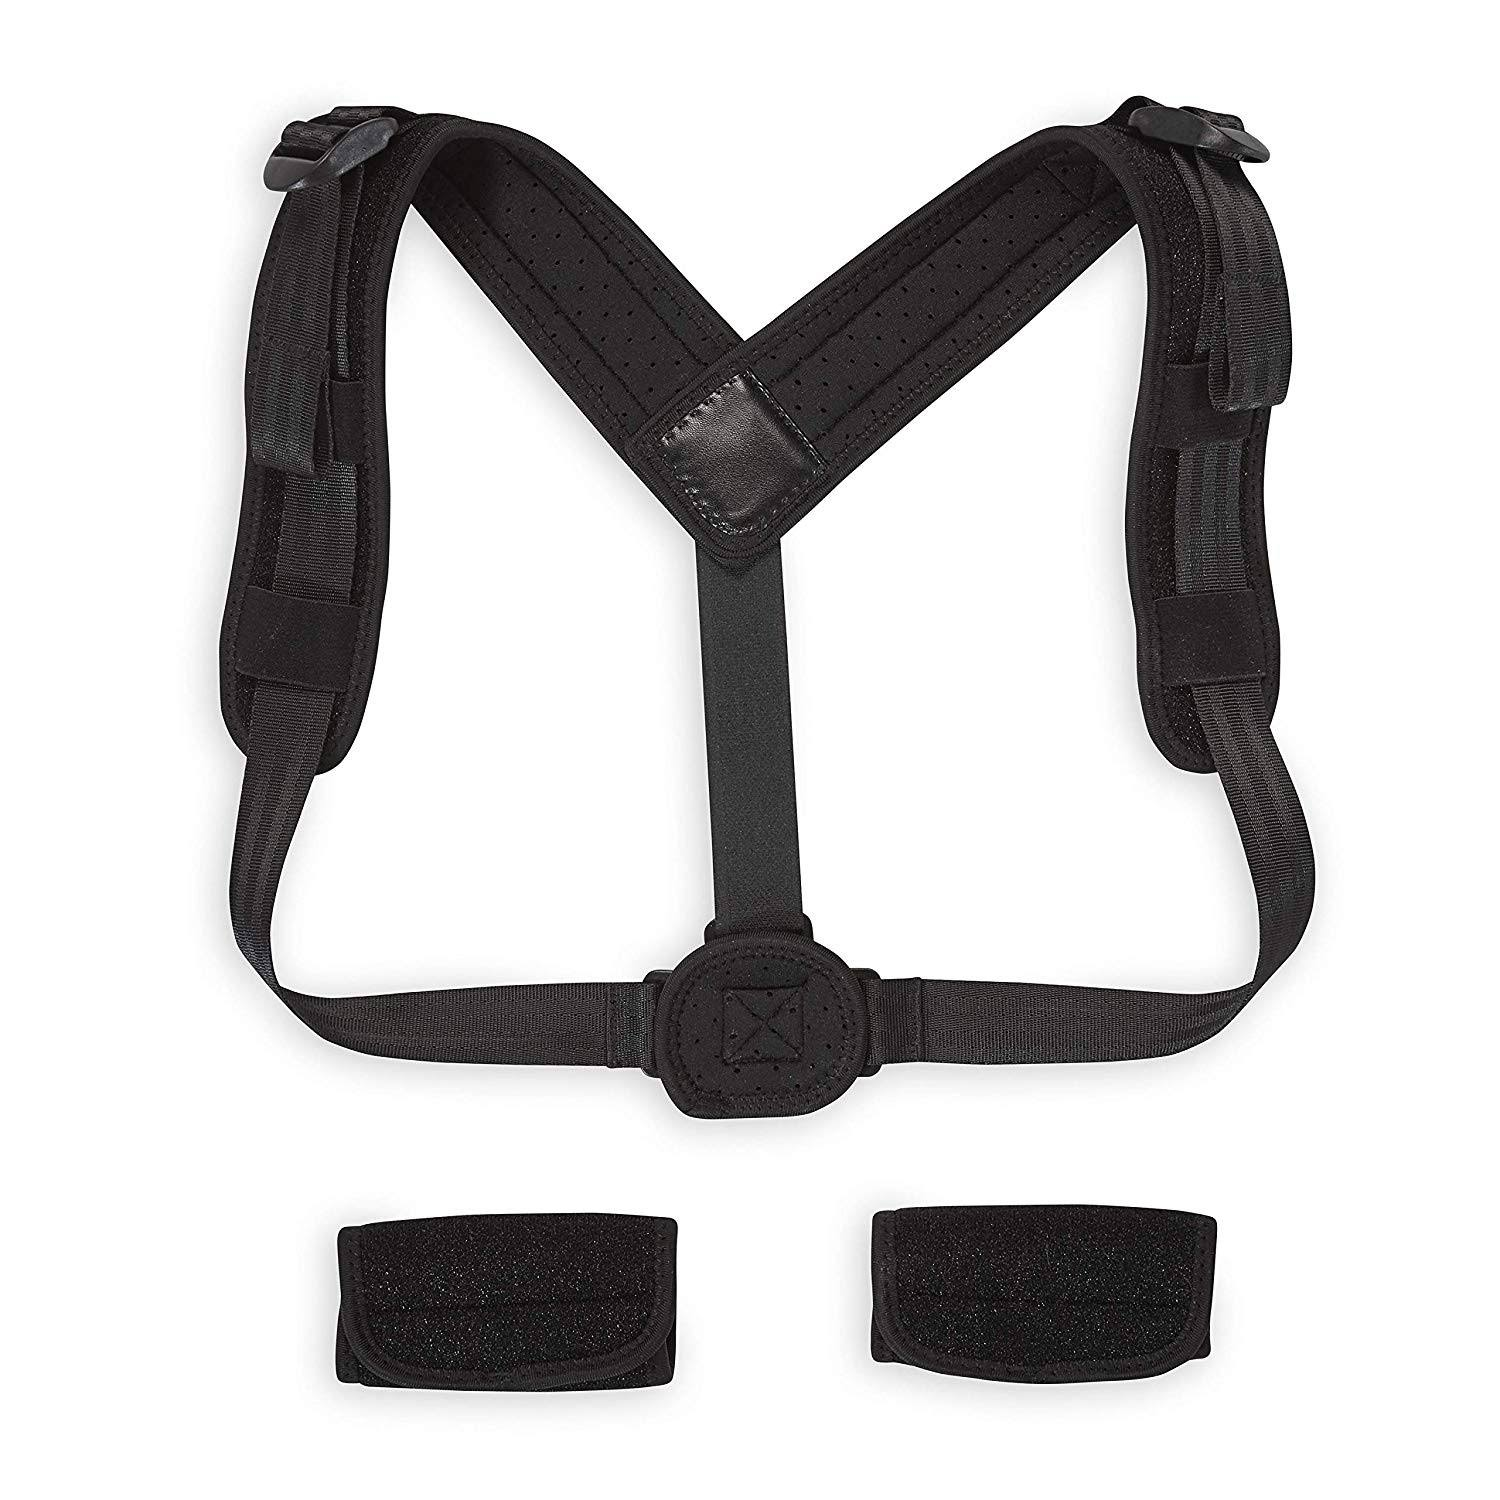 Gaiam Restore Posture Corrector - One Size Fits Most, Black